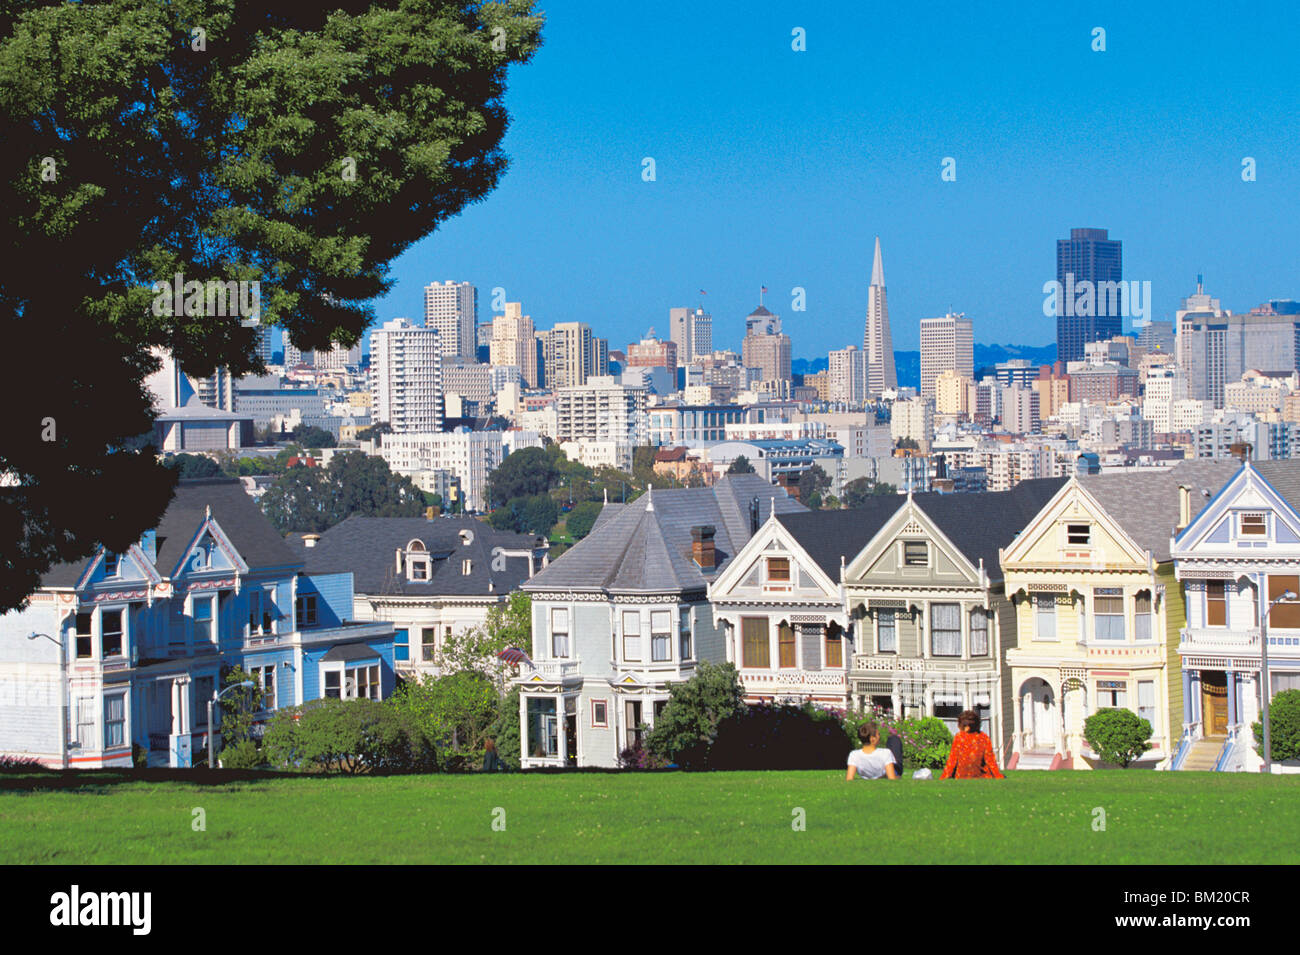 Alamo Square, with city skyline in background, San Francisco, California, United States of America, North America - Stock Image